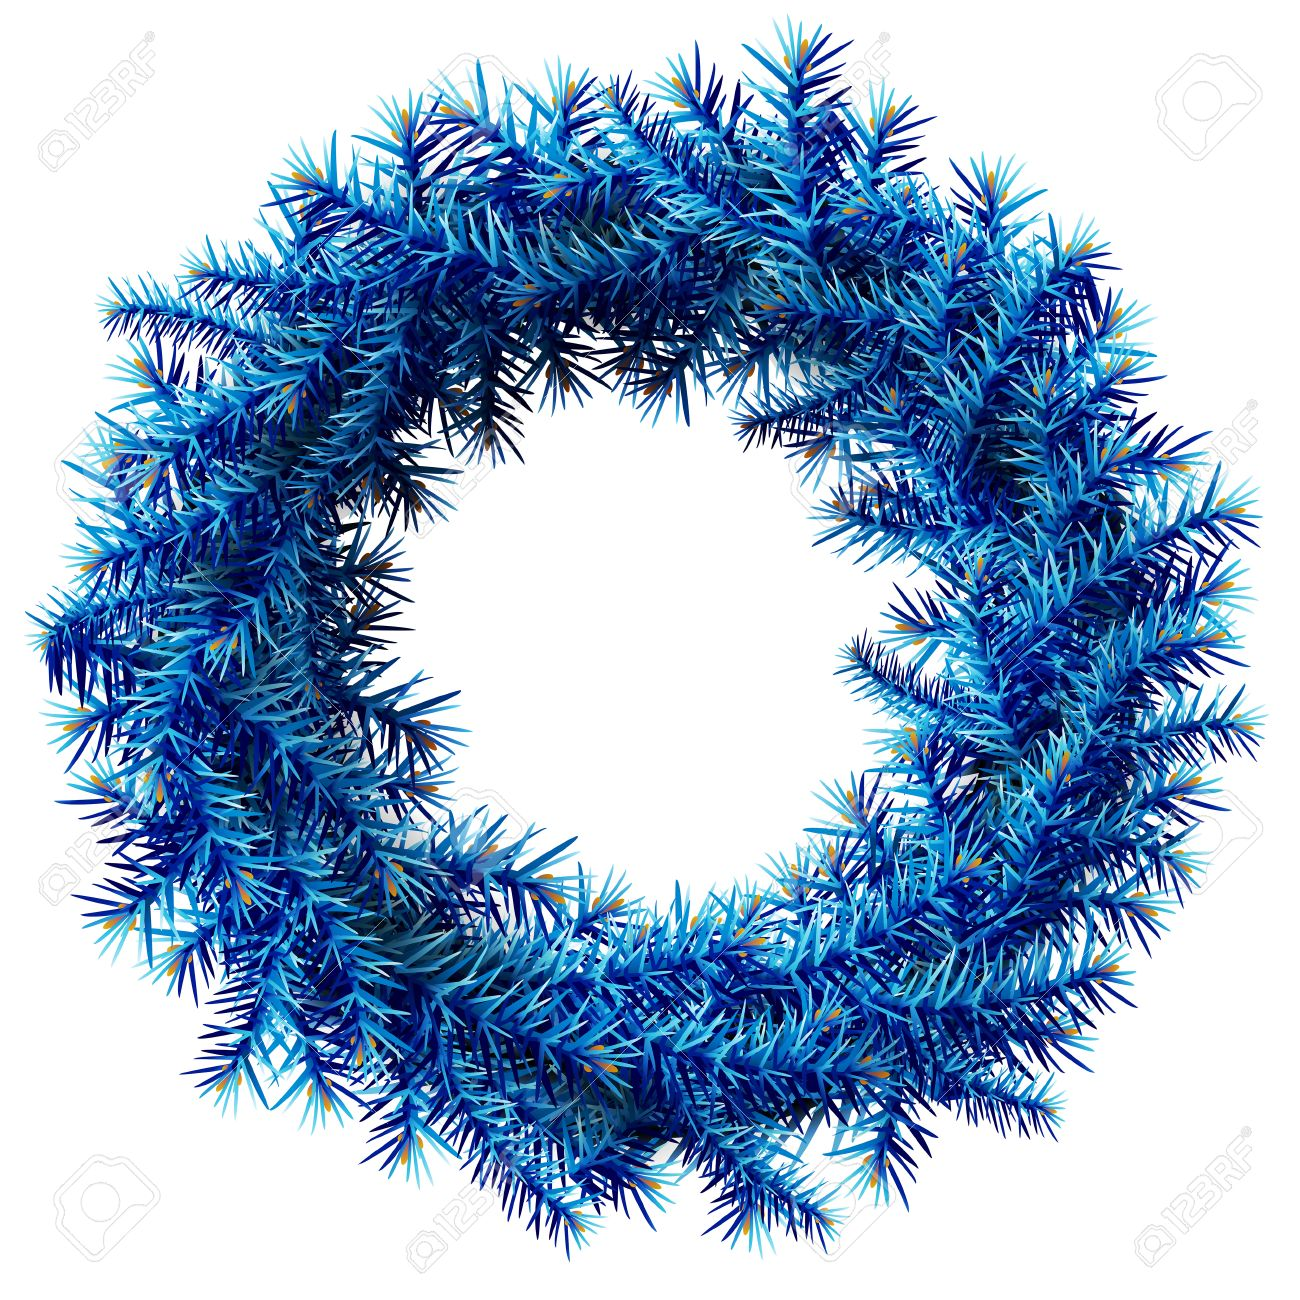 christmas wreath without decoration empty wreath of blue pine branches isolated on white background - Blue Christmas Wreath